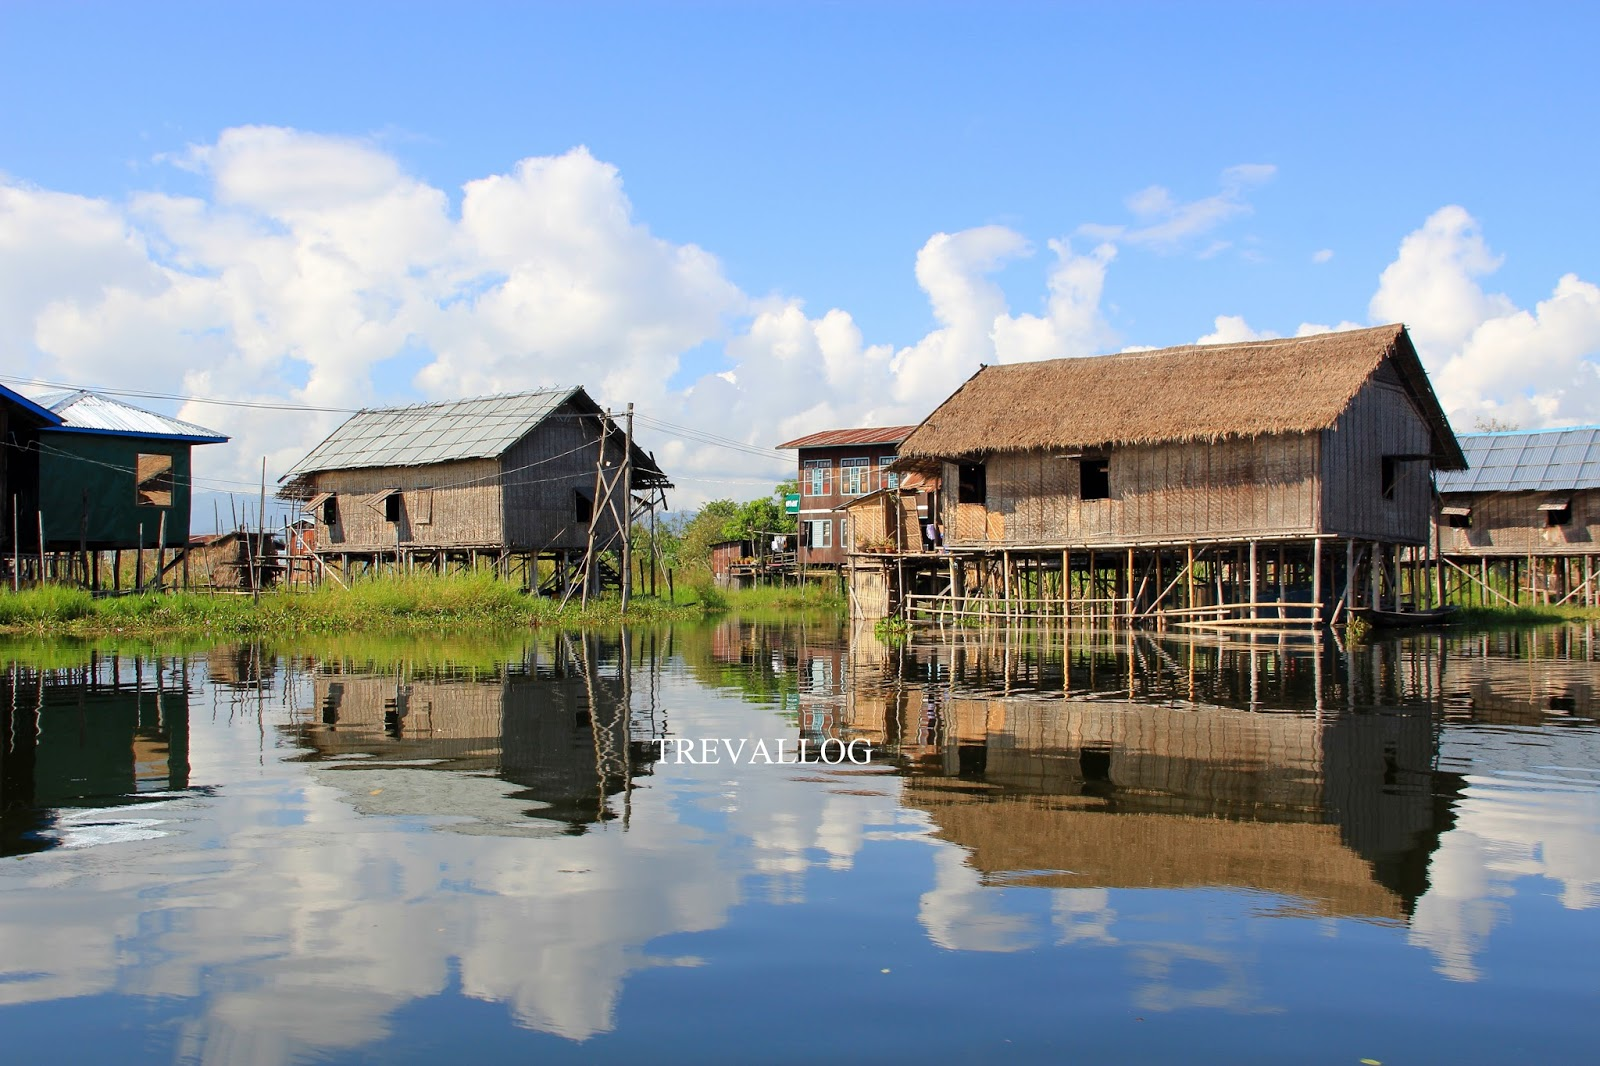 Blissful scenery in Inle Lake, Myanmar